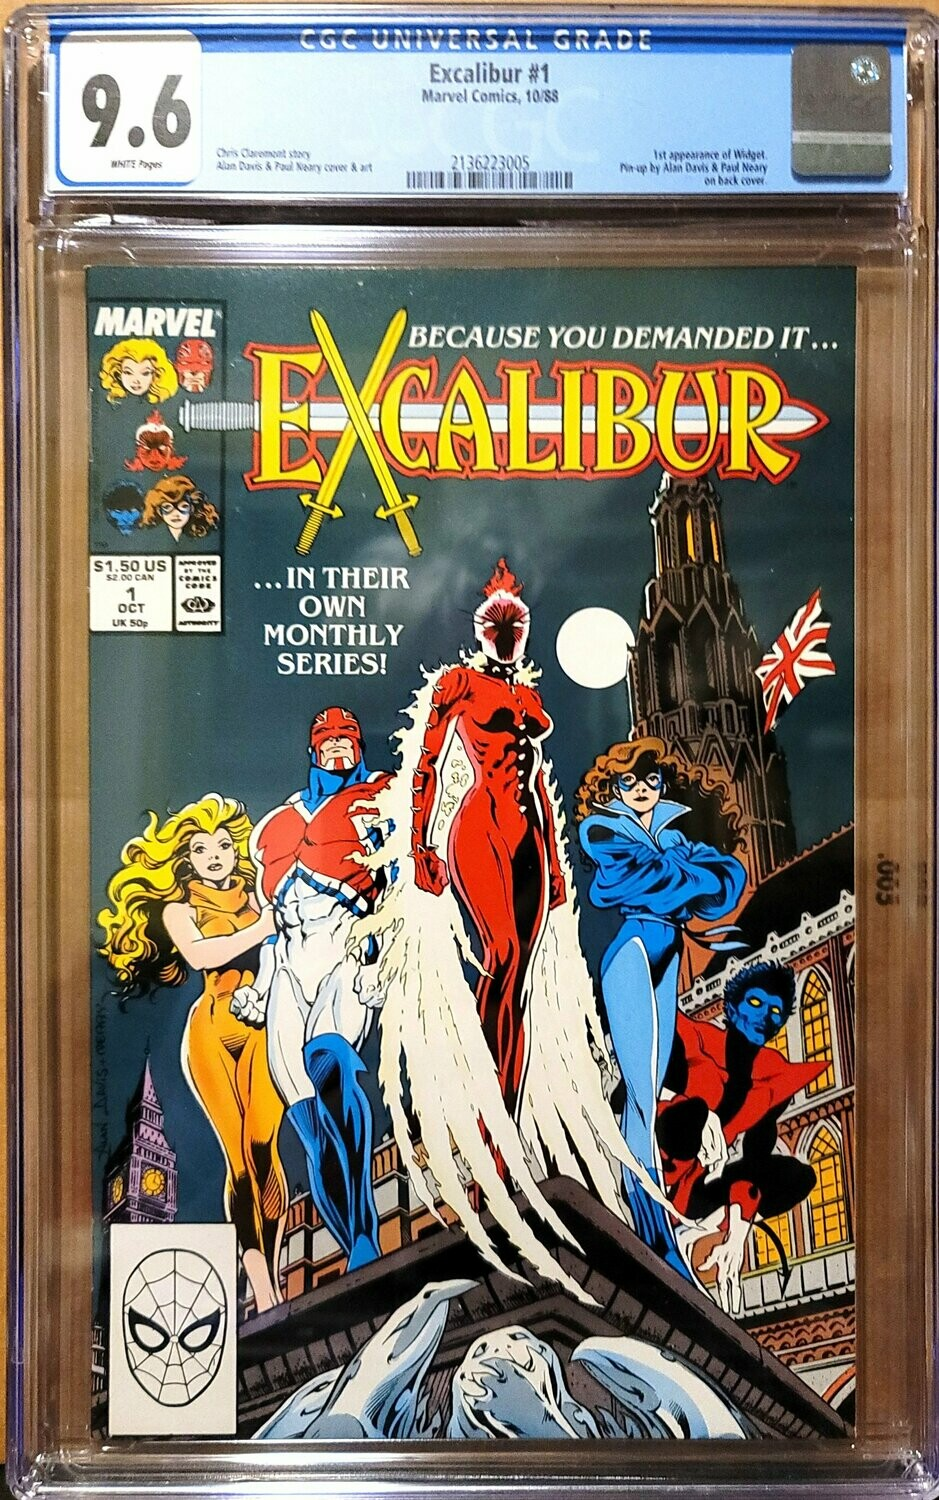 EXCALIBUR #1 MARVEL (W/P) (10/88) CGC 9.6 1ST APP. OF WIDGET